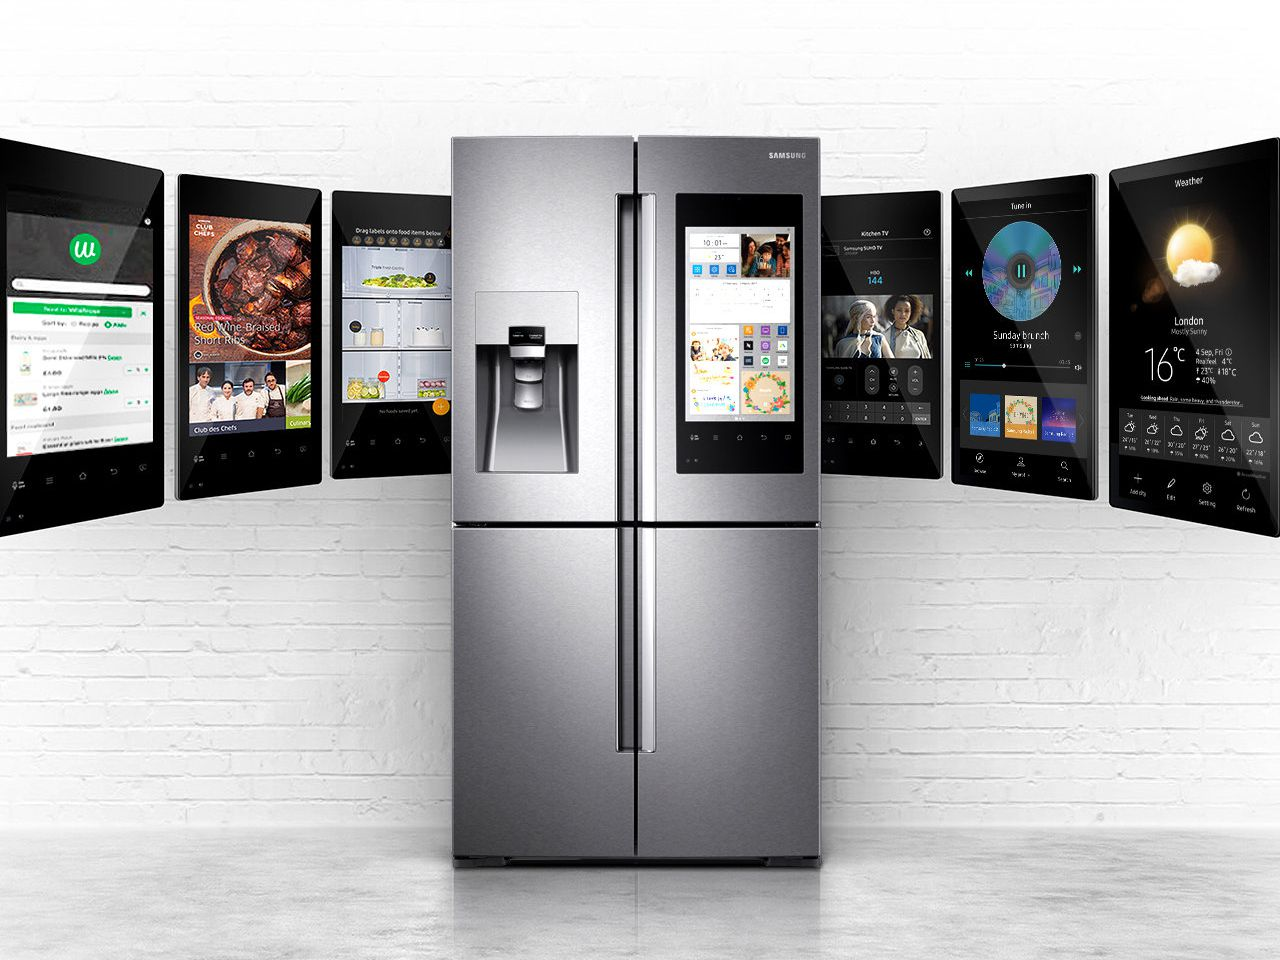 What Is a Smart Refrigerator? Top 9 refrigerator features   Zit.ng